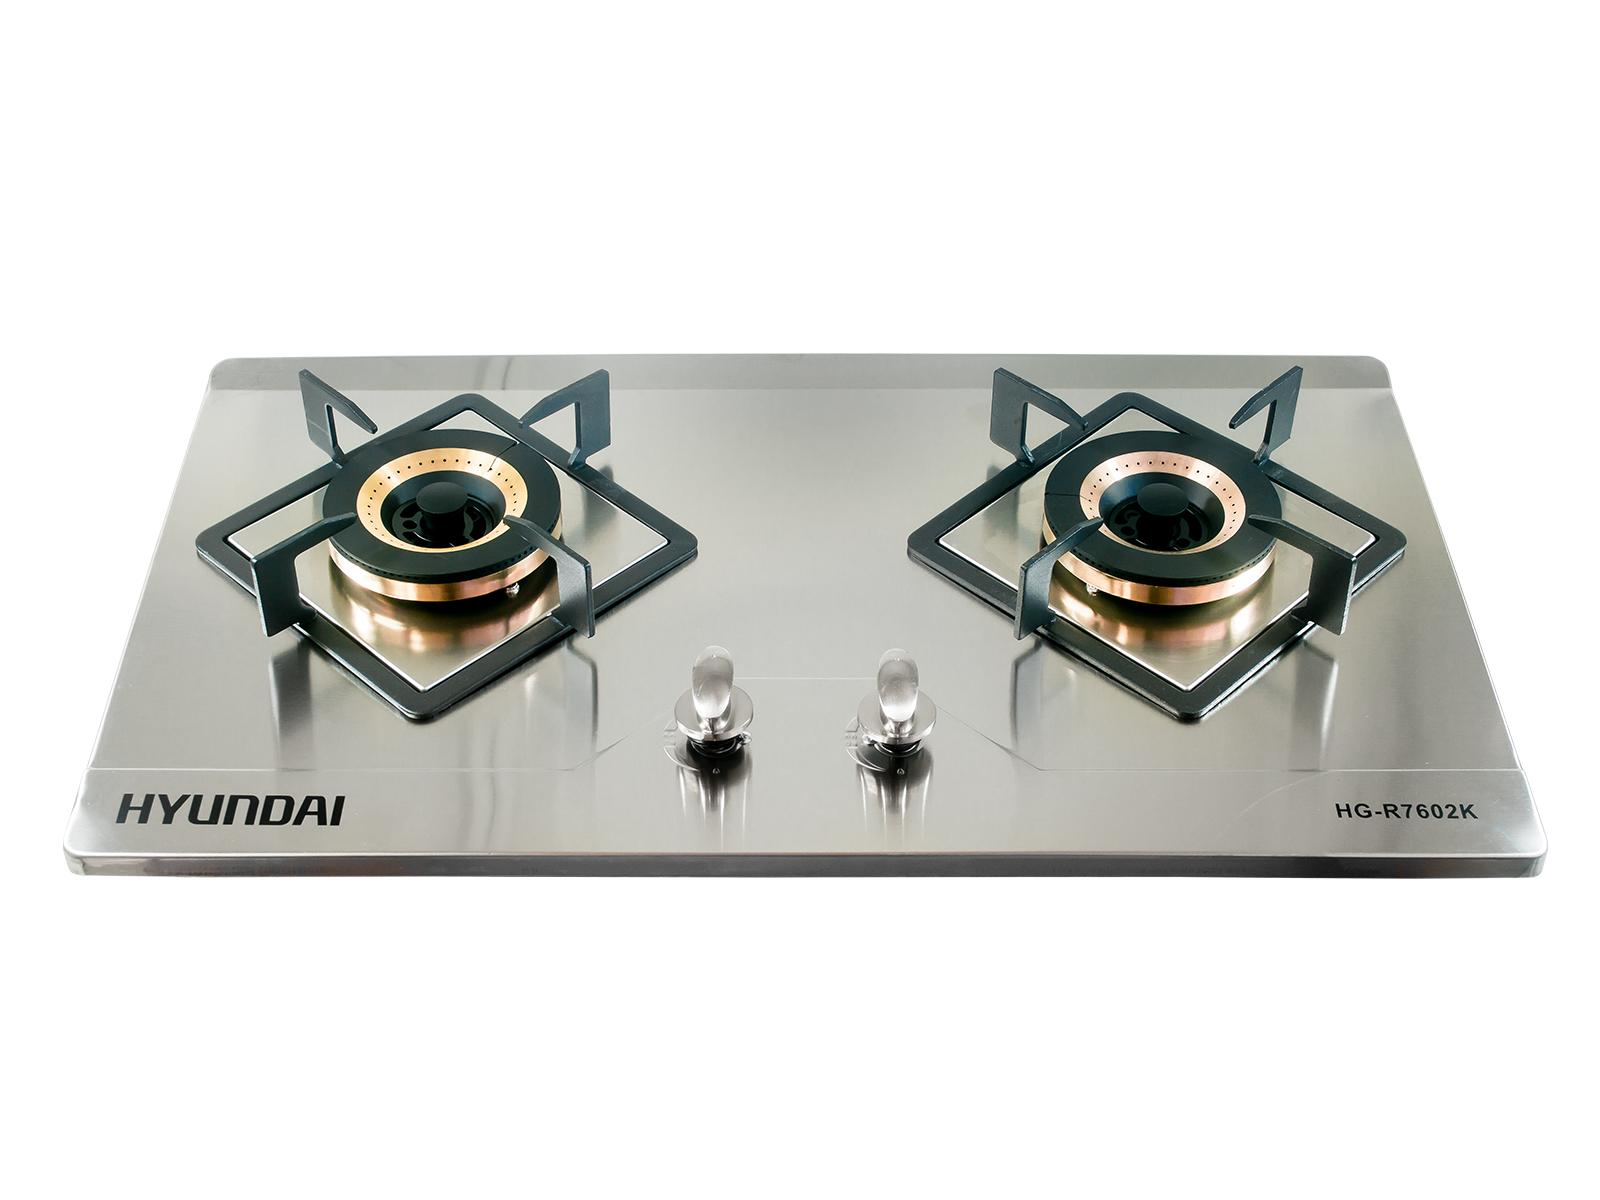 Hyundai Double Burner Stainless Steel Gas Stove Hg R7602k